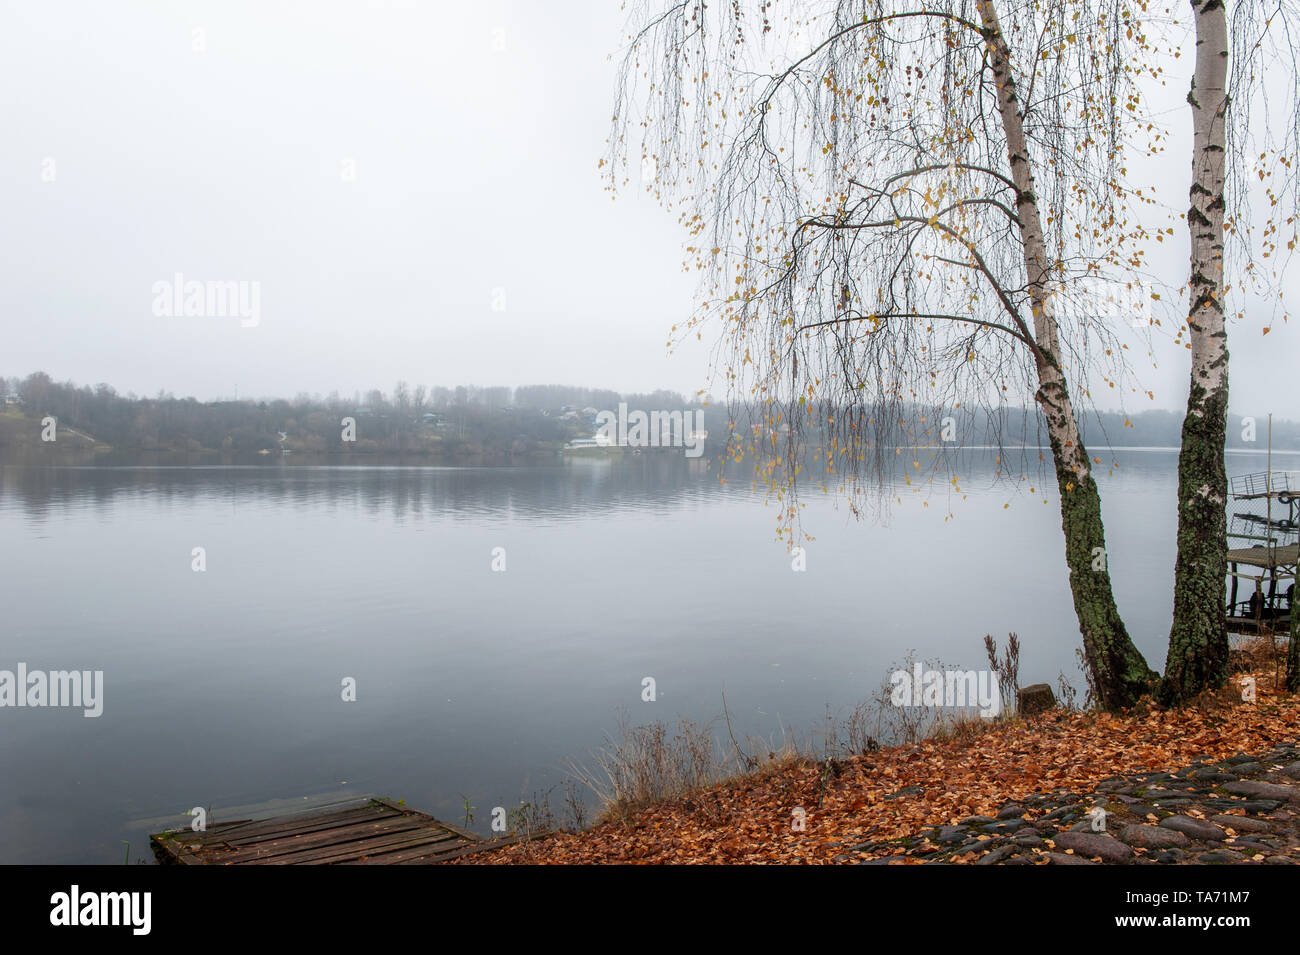 Beautiful view of the Volga river Embankment in late autumn. Ples old Russian city in Russia the City is associated with the great Russian artist Levi - Stock Image